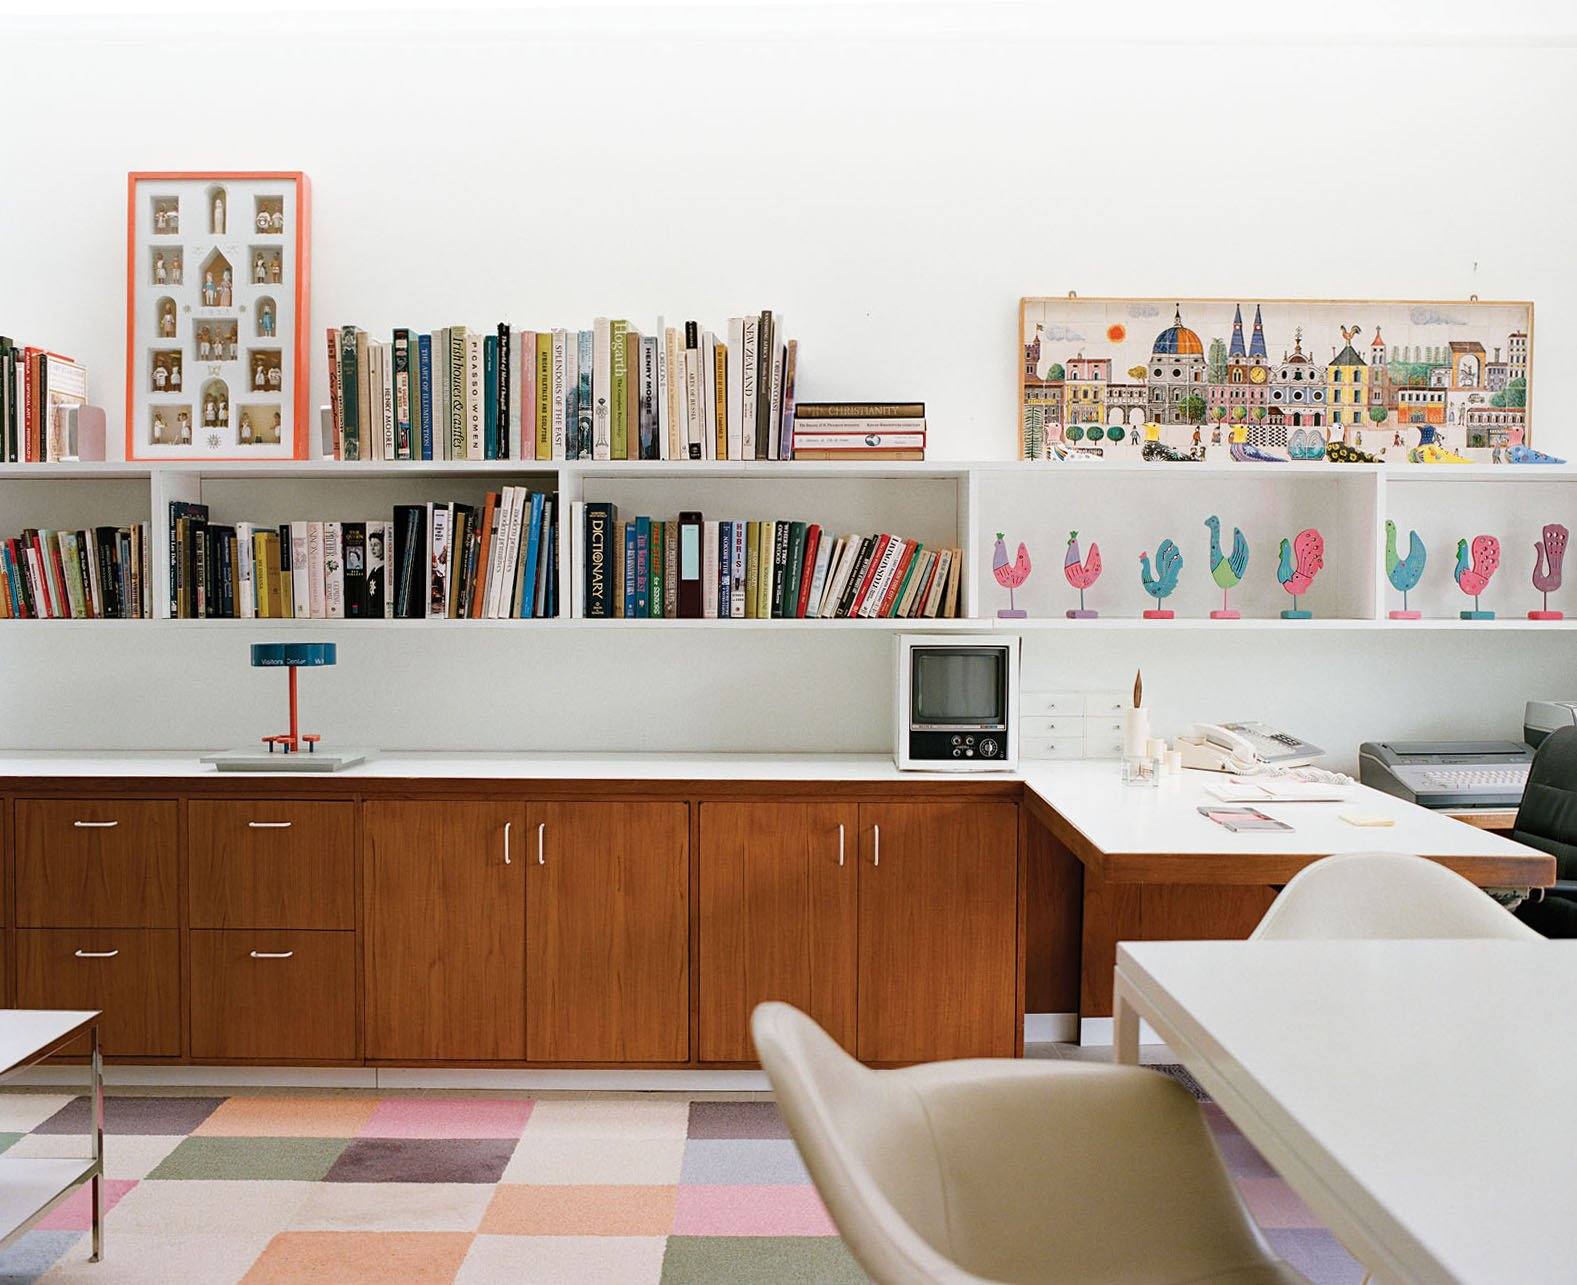 The playroom later became Xenia's office.  Office by Jim Sullivan from Game On: Great Design in Super Bowl Cities